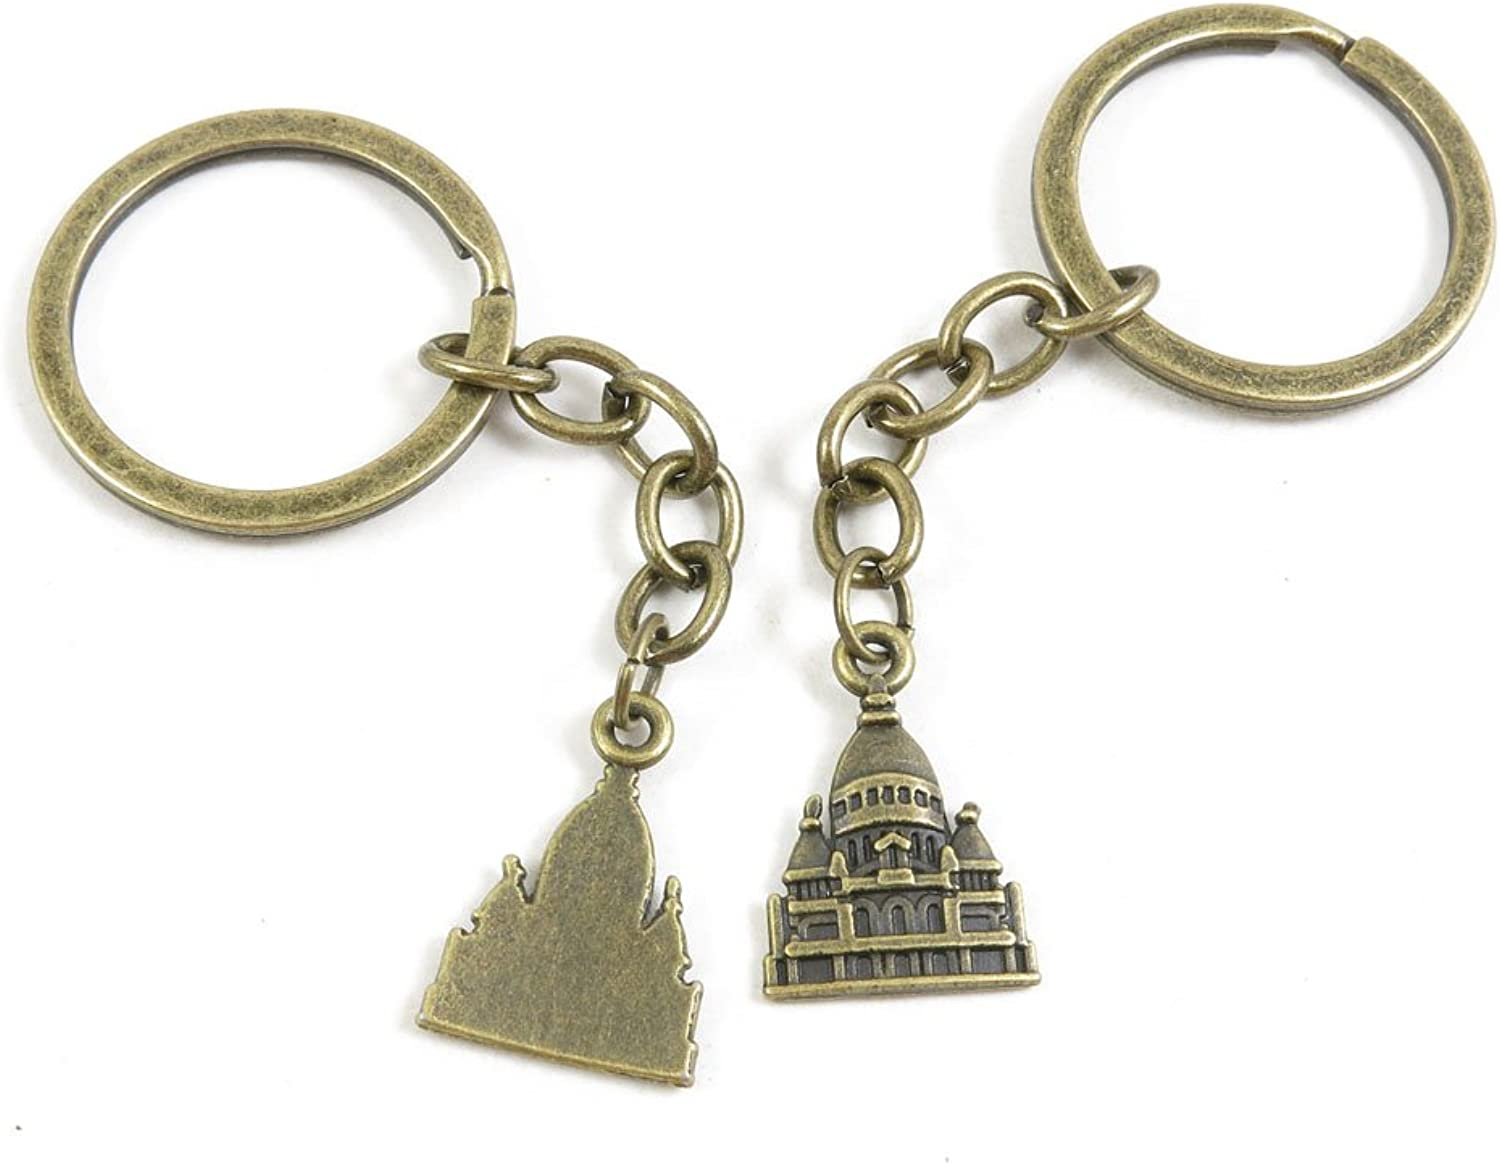 230 Pieces Fashion Jewelry Keyring Keychain Door Car Key Tag Ring Chain Supplier Supply Wholesale Bulk Lots V1ET4 Castle Imperial Palace